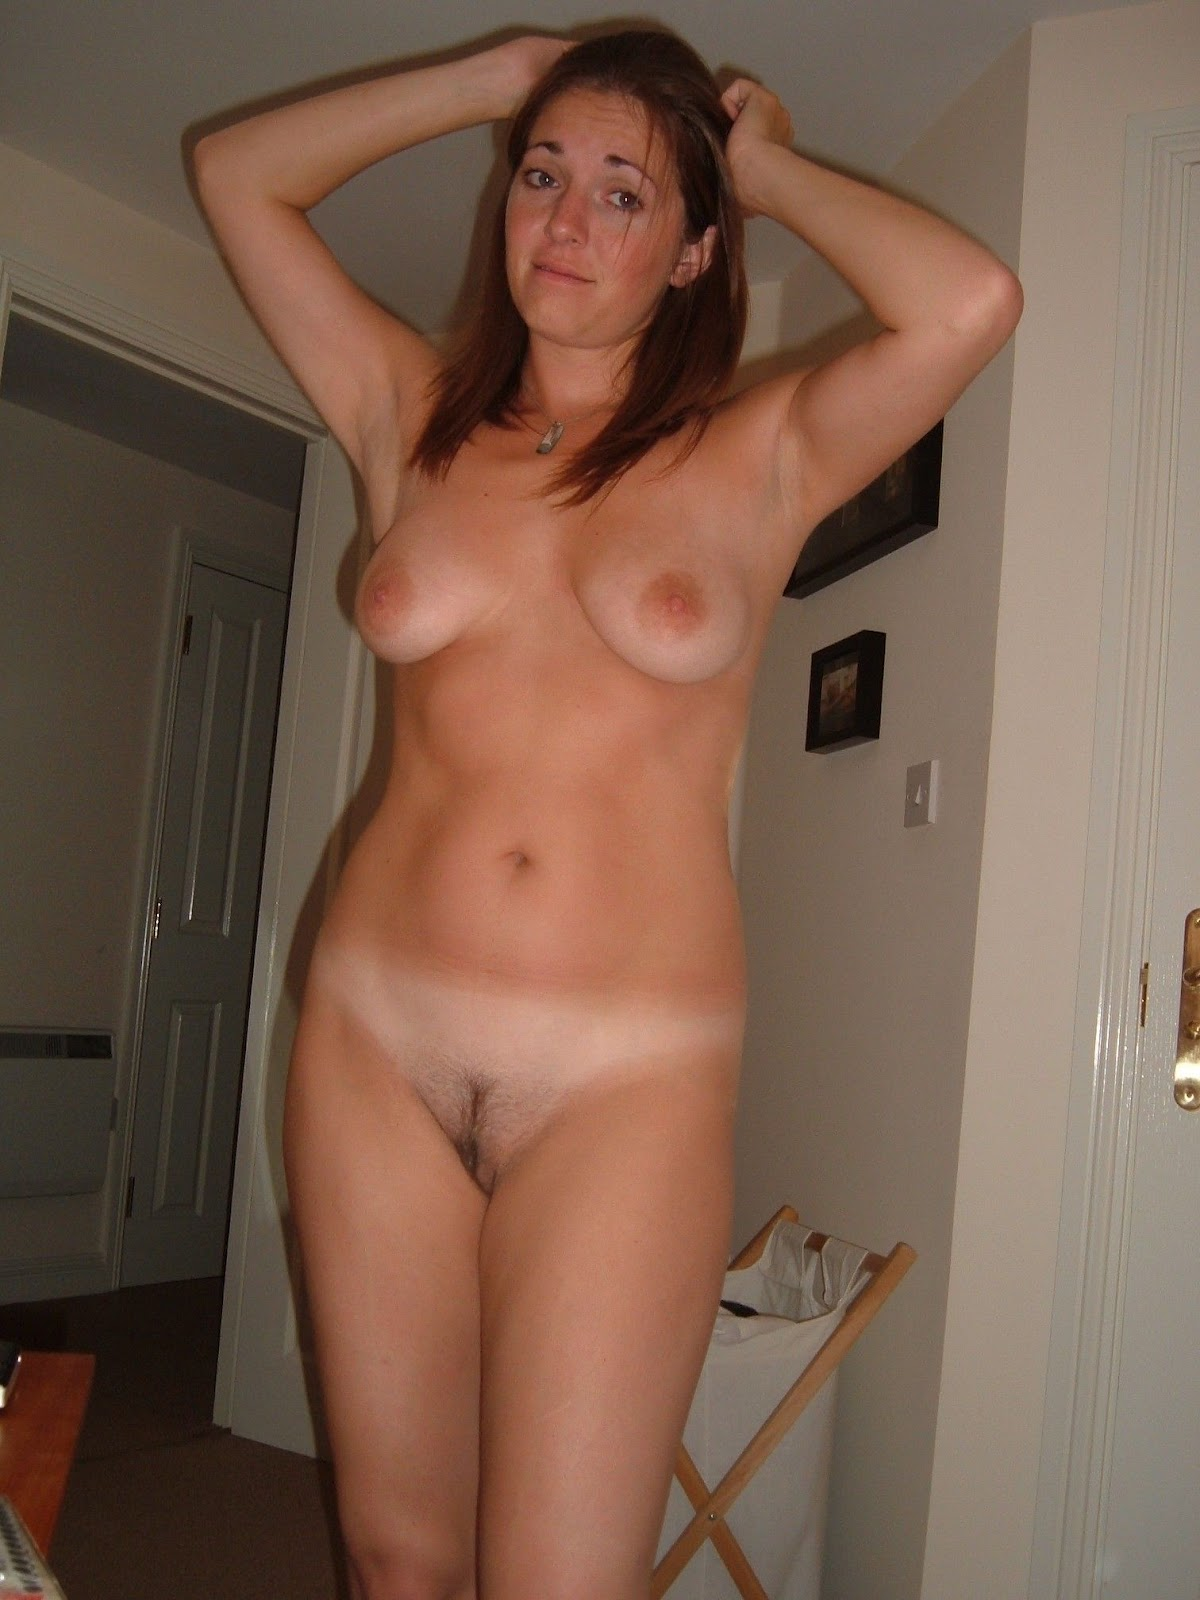 Young horny women naked